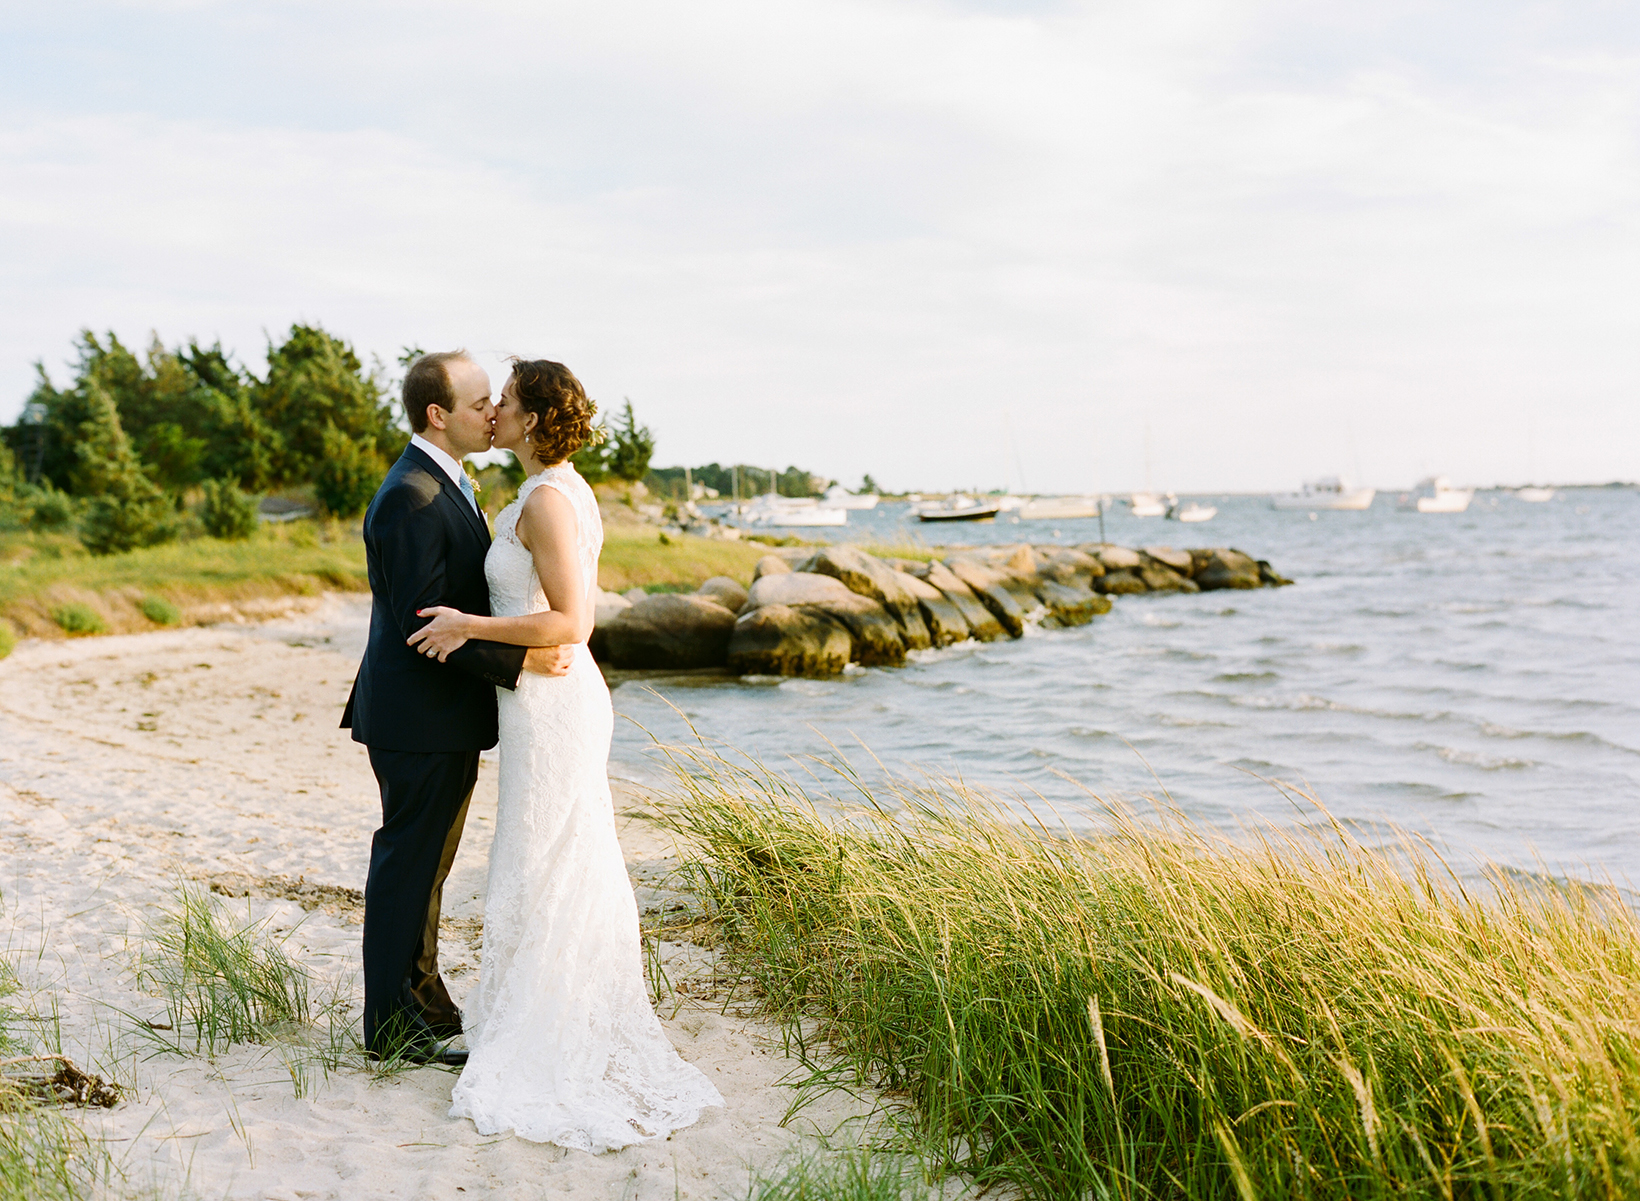 Cape Cod wedding blog photo from Stacey Hedman | Photography about Courtney & Hanns on Waquoit Bay